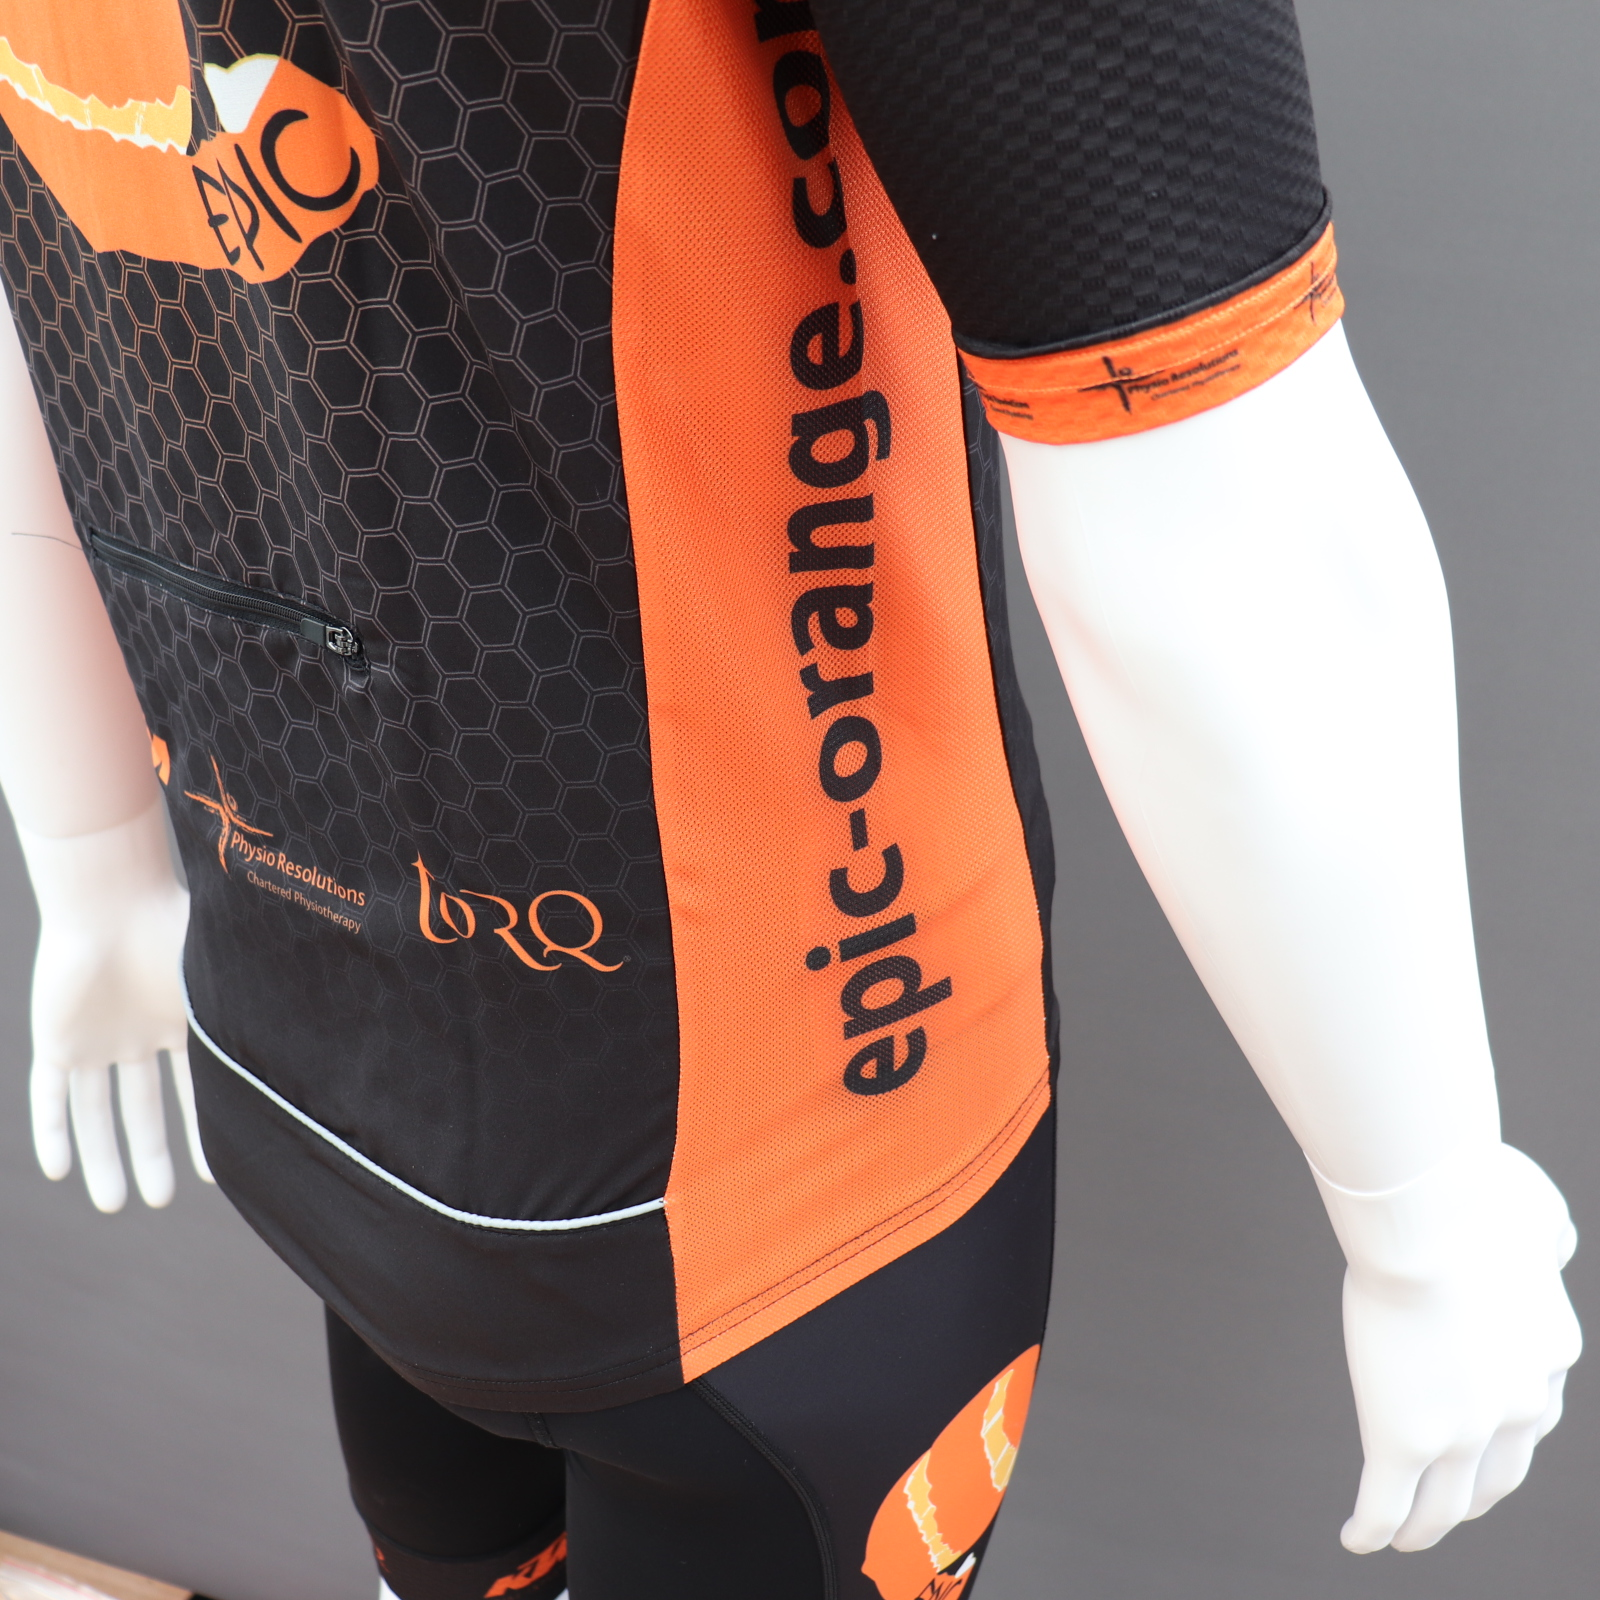 Cycle Gilets - Vented Side & Drop Tail